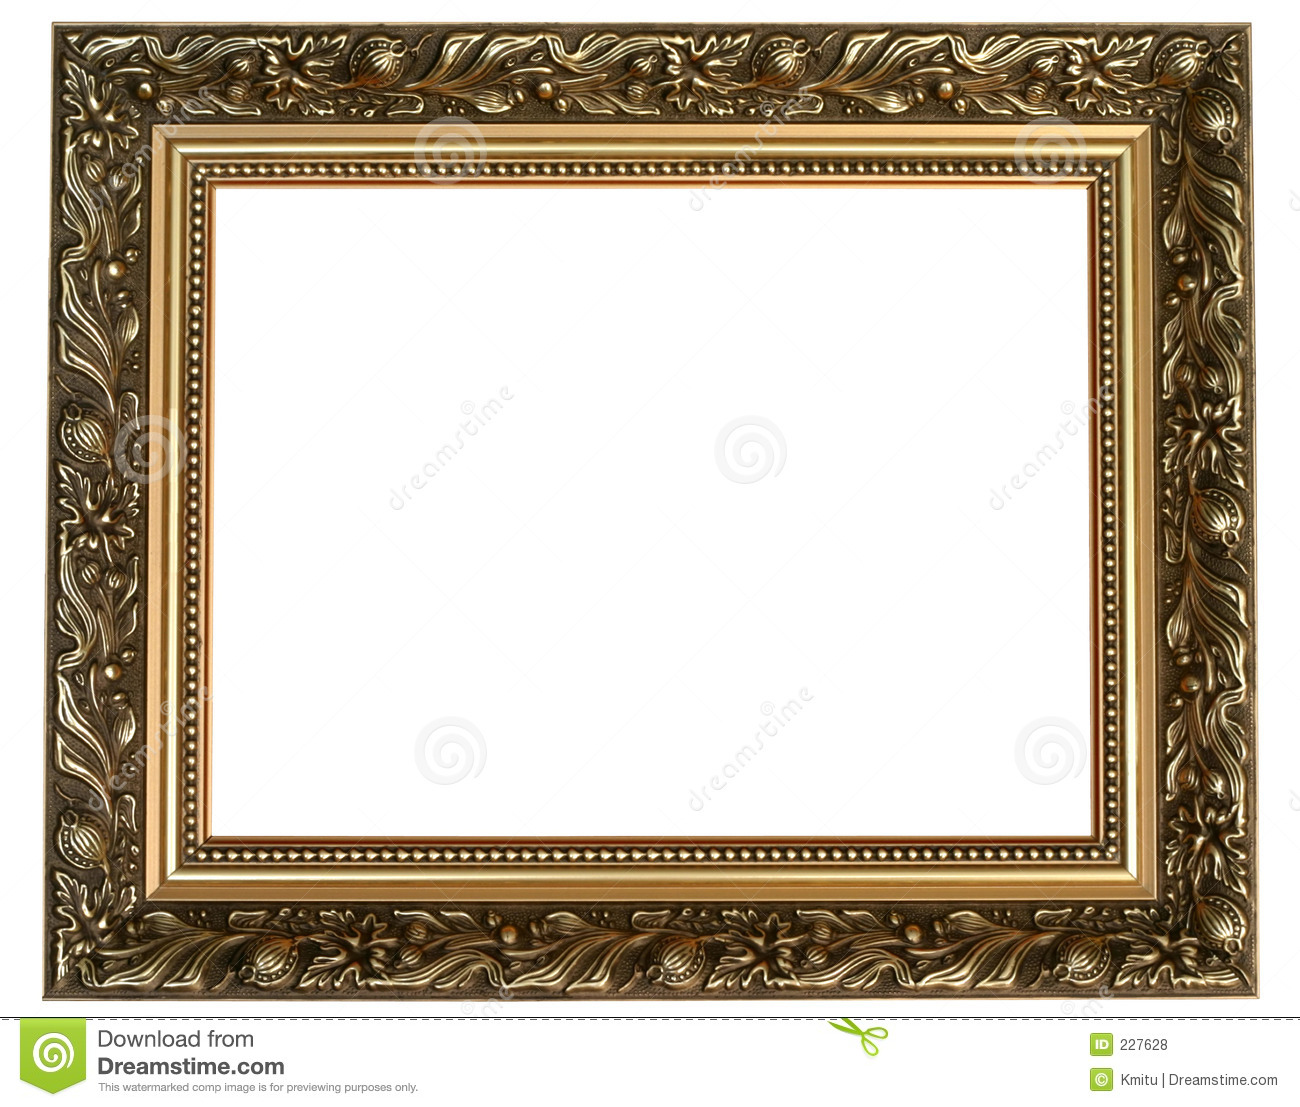 these images will help you understand the words antique picture frame in detail all images found in the global network and can be used only with